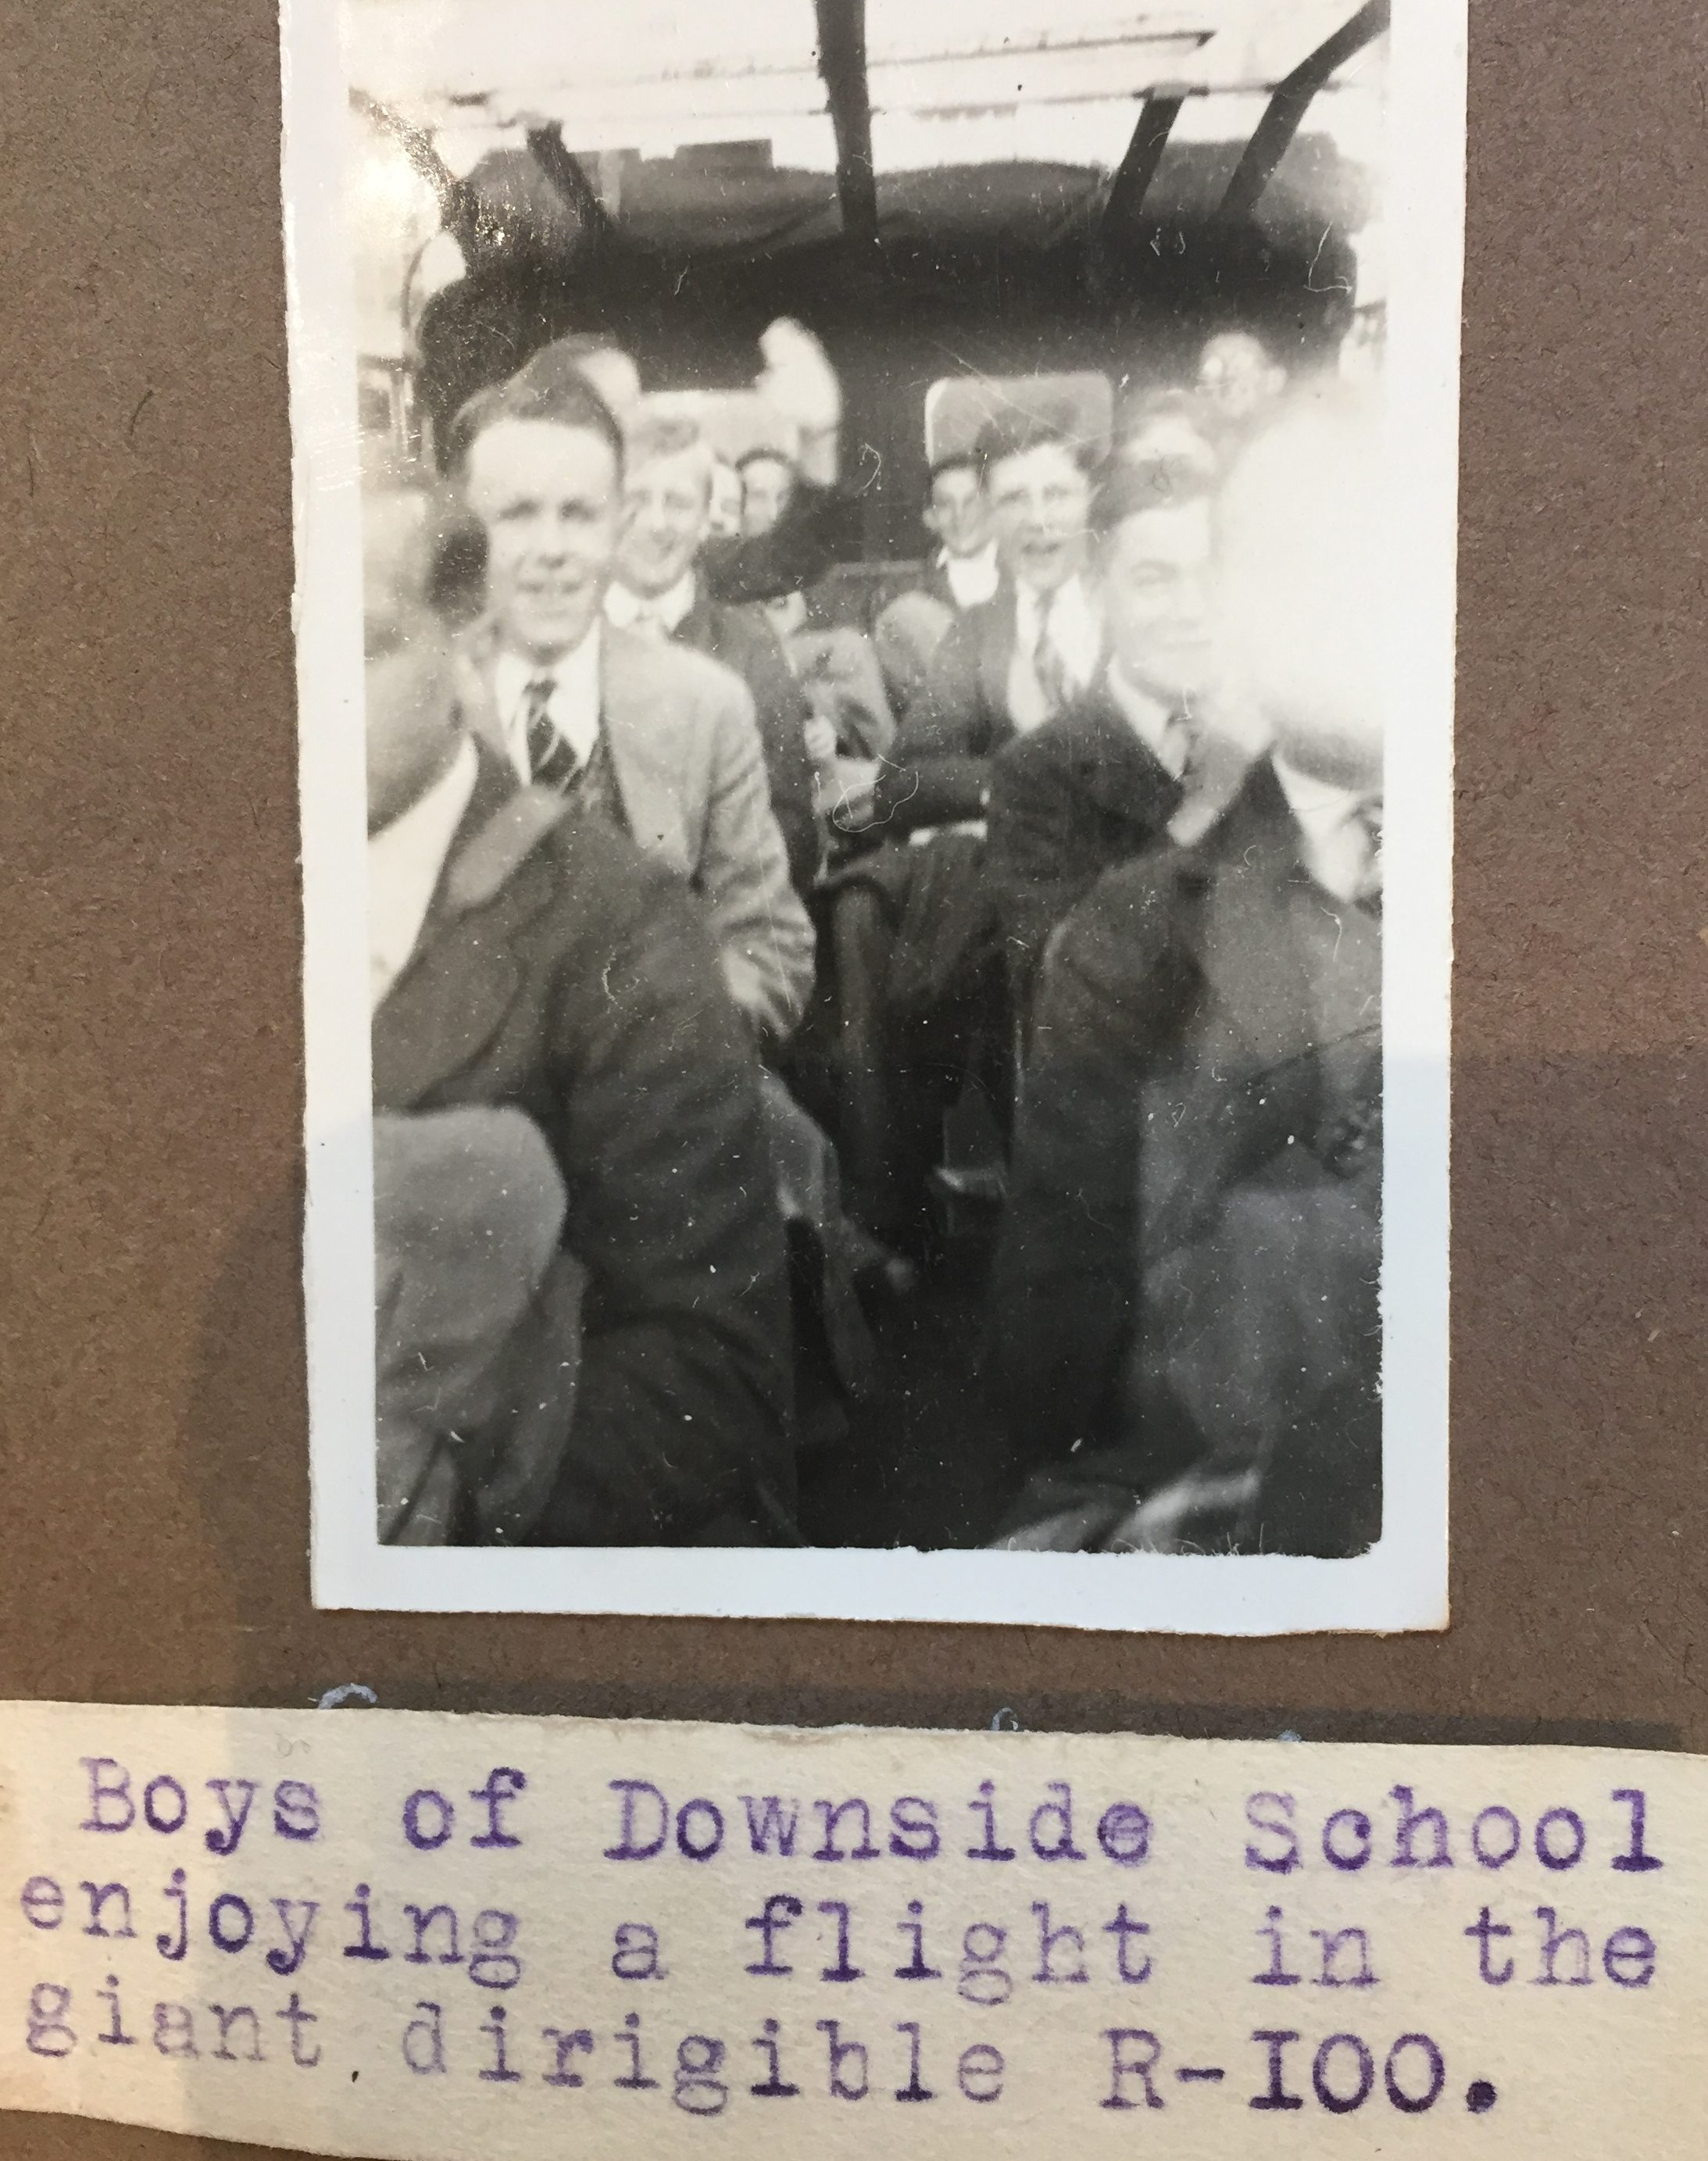 Old photo of boys at downside school enjoying a flight